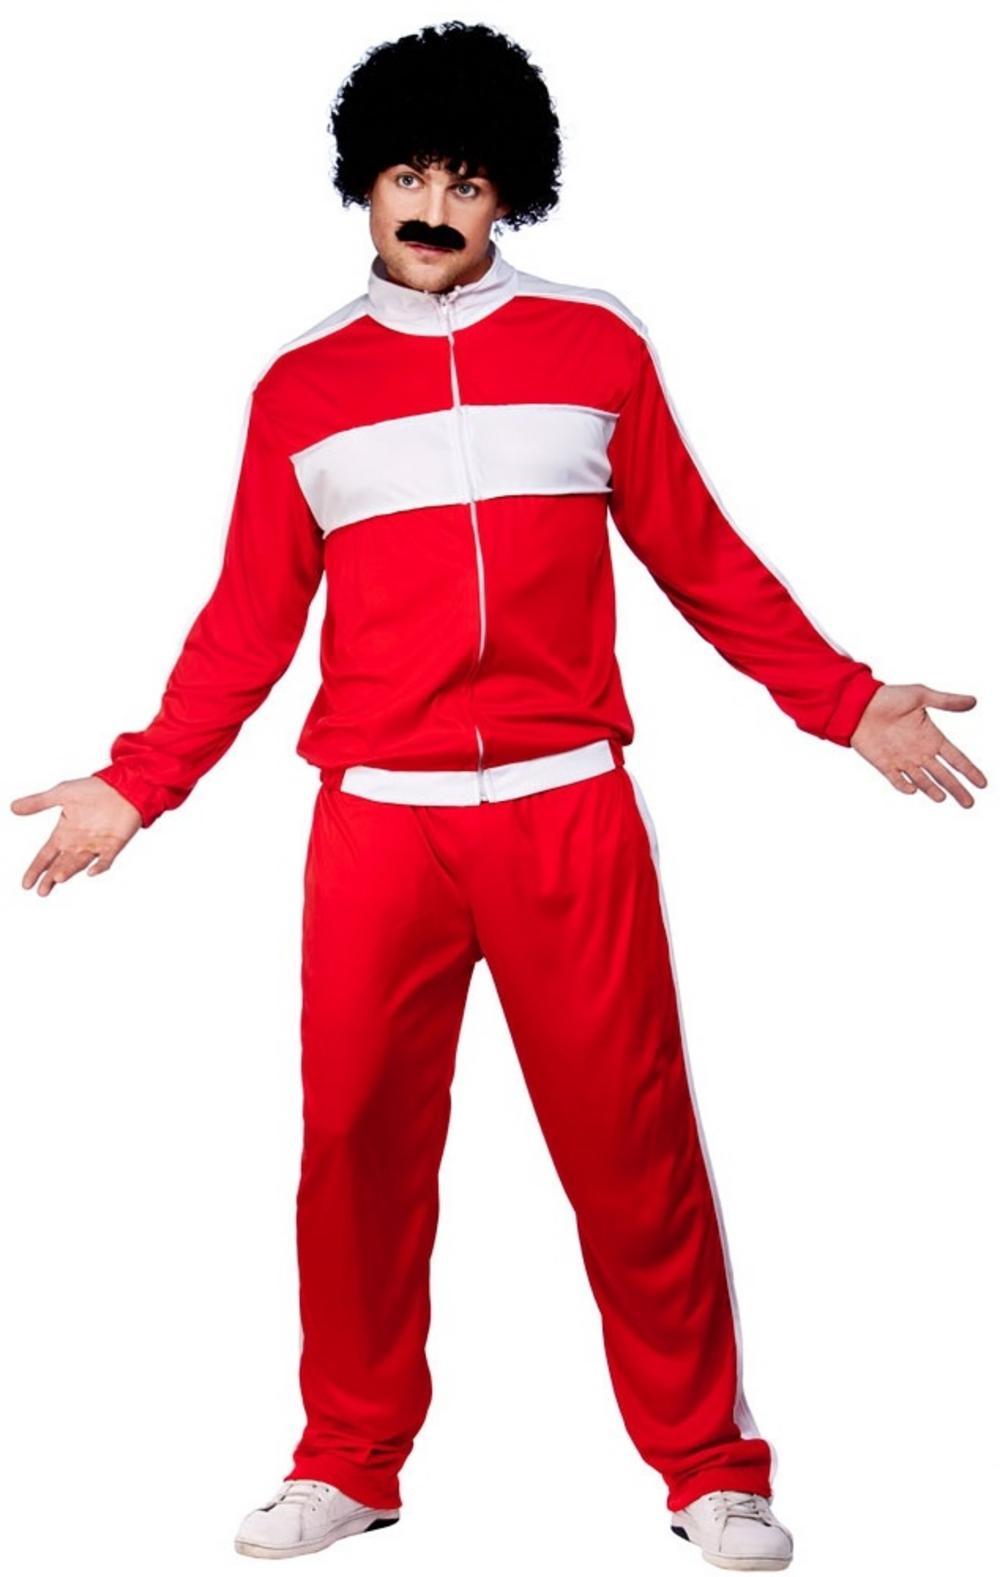 Scouser Tracksuit Costume